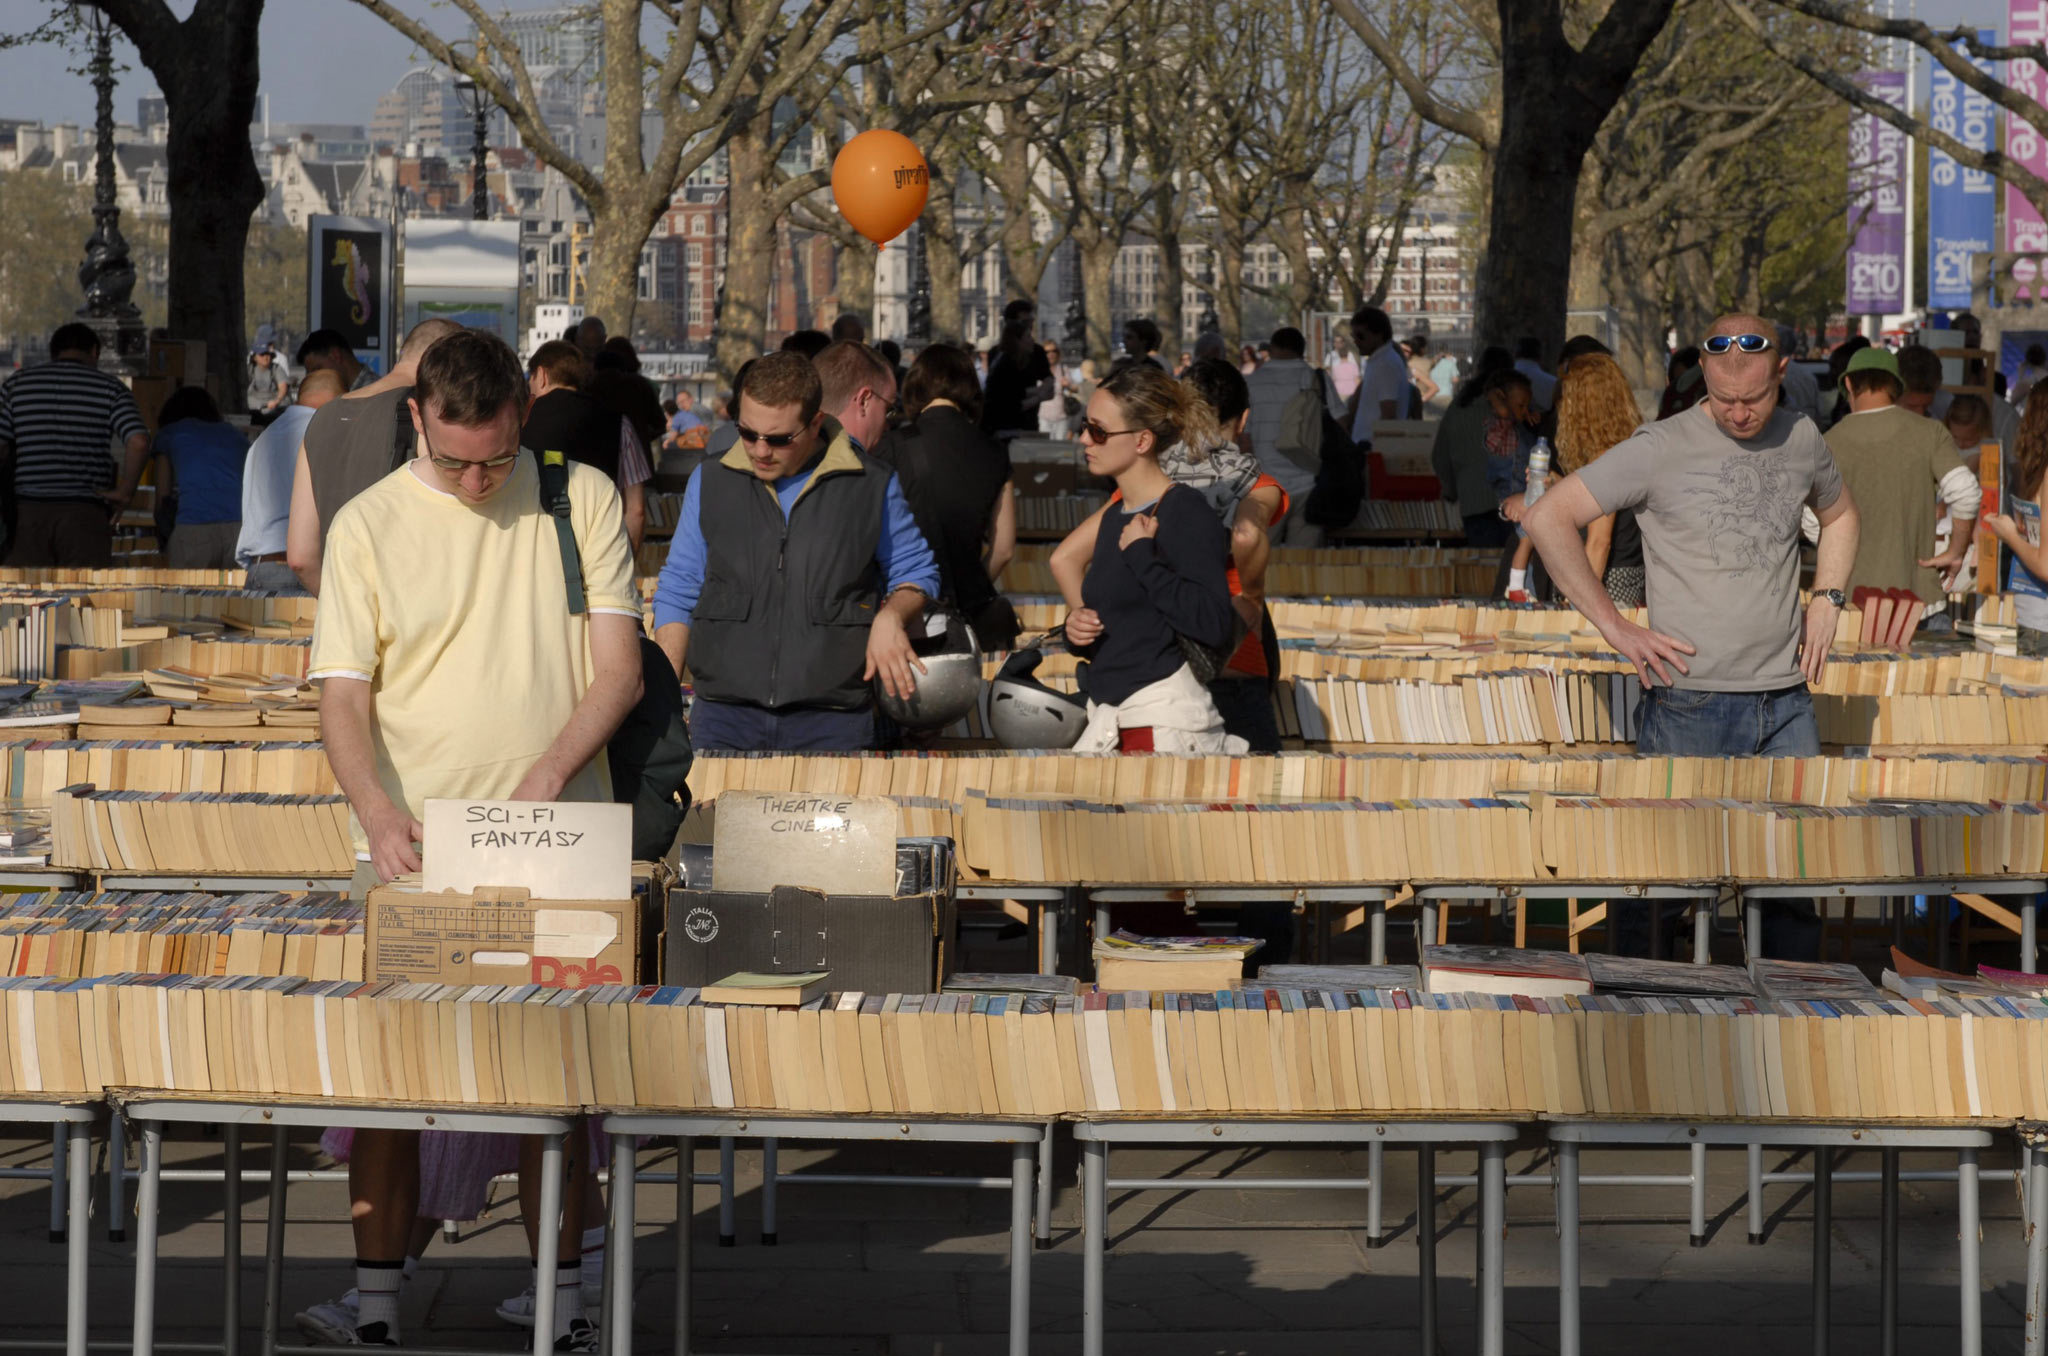 Browse: South Bank Book Market